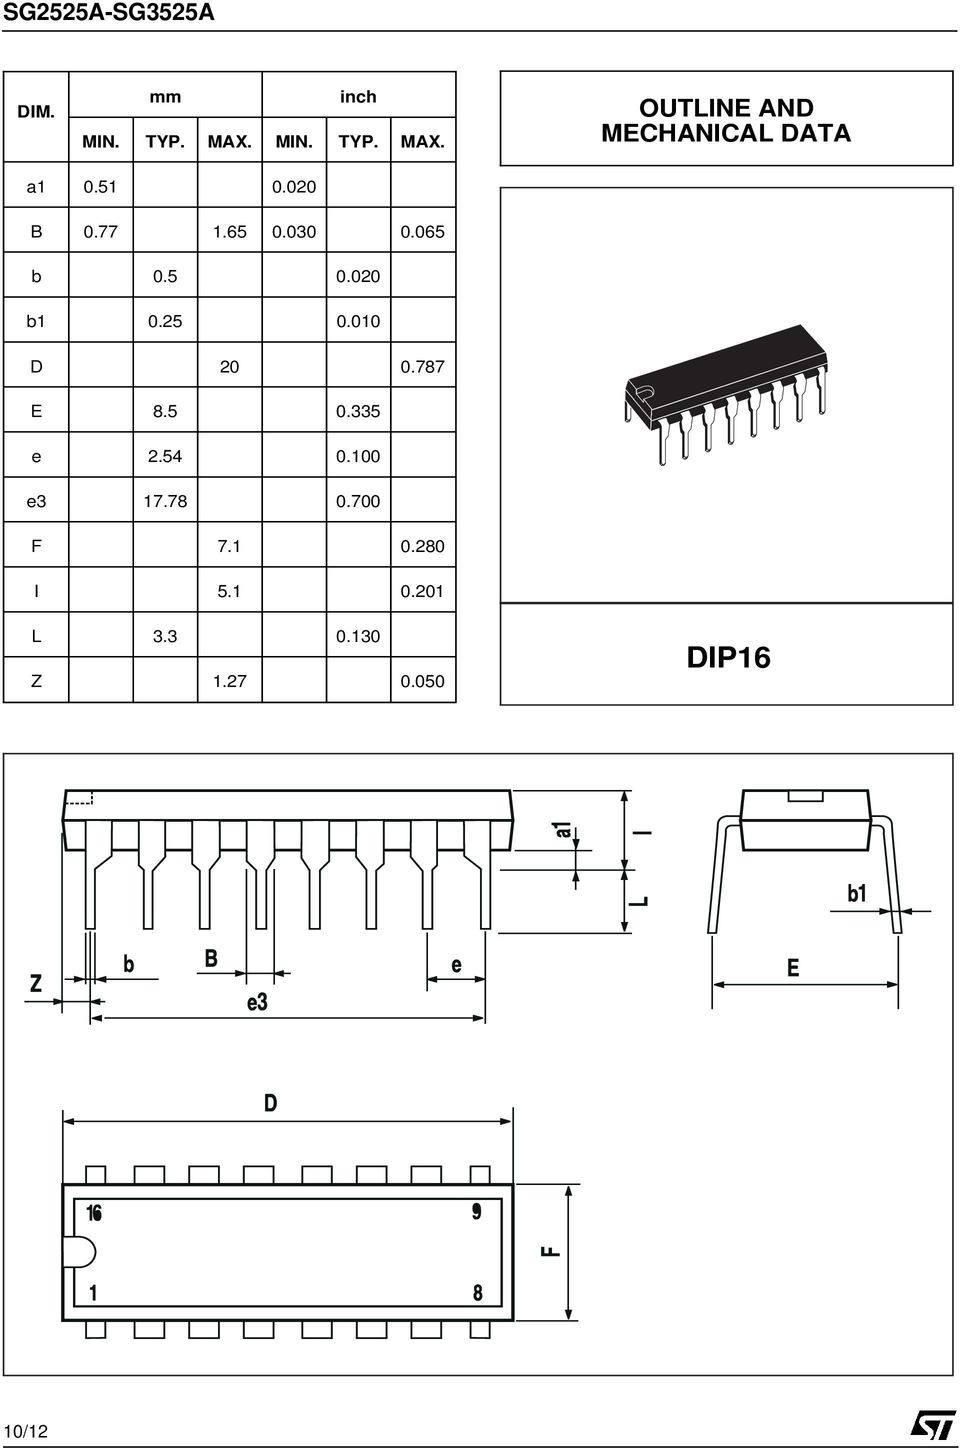 Sg2525a Sg3525a Regulating Pulse Width Modulators Pdf 12v Switching Car Psu By Uc3843 Circuit Wiring Diagrams 010 D 20 0787 E 85 0335 254 0100 E3 1778 0700 F 7